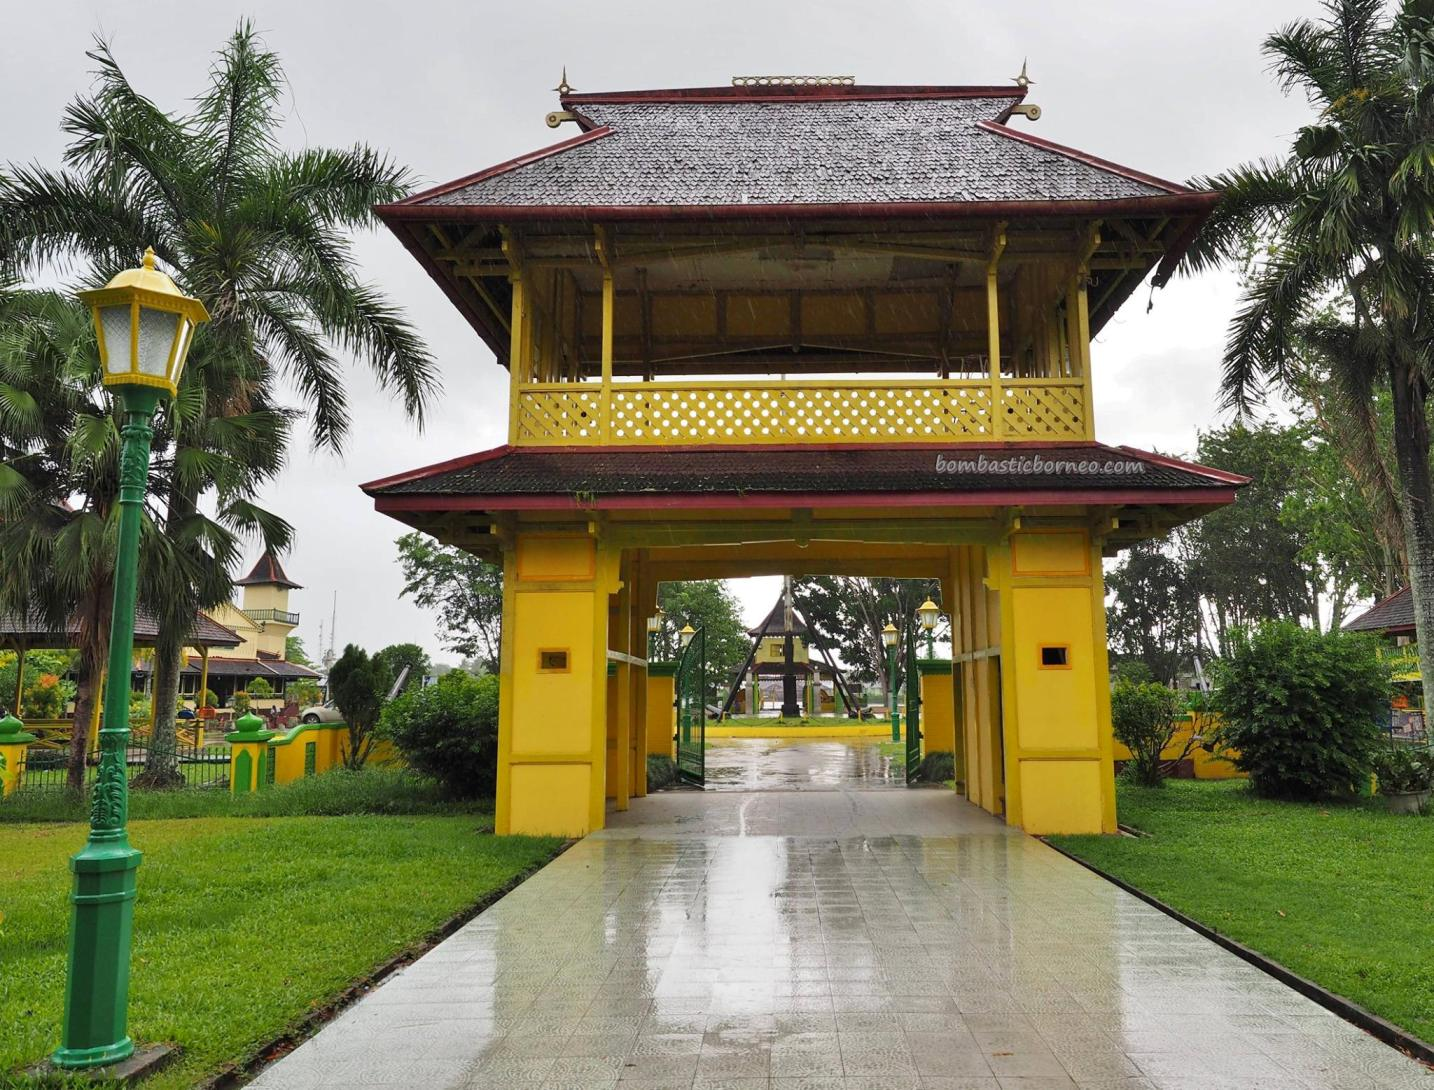 Palace, Keraton Sambas, Malay Sultanate, history, ancient, traditional, backpackers, Borneo, Indonesia, West Kalimantan, museum, Tourism, tourist attraction, travel guide, crossborder,